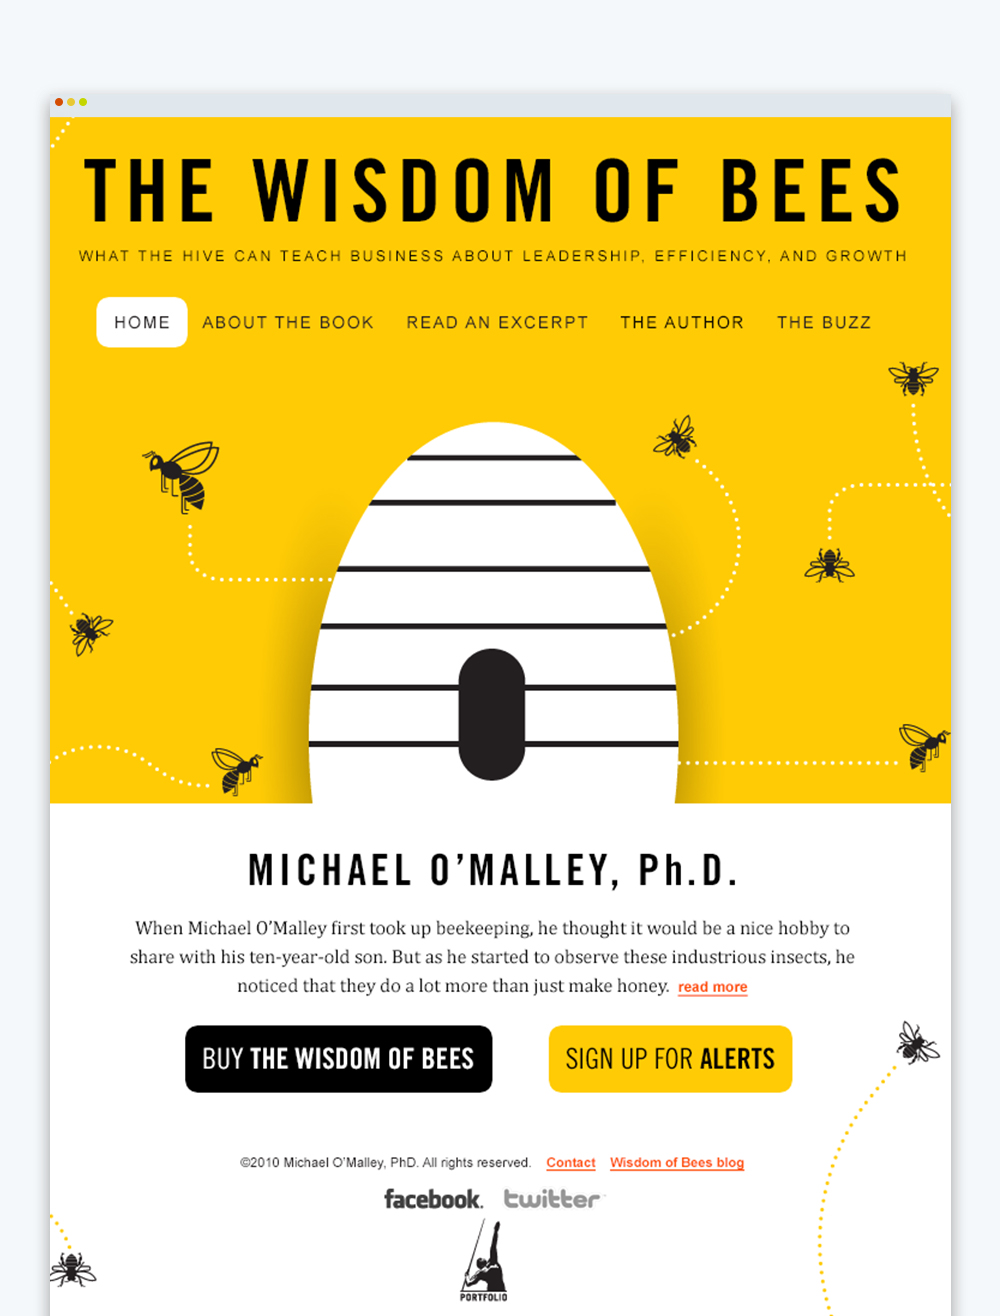 Website promoting The Wisdom of Bees book